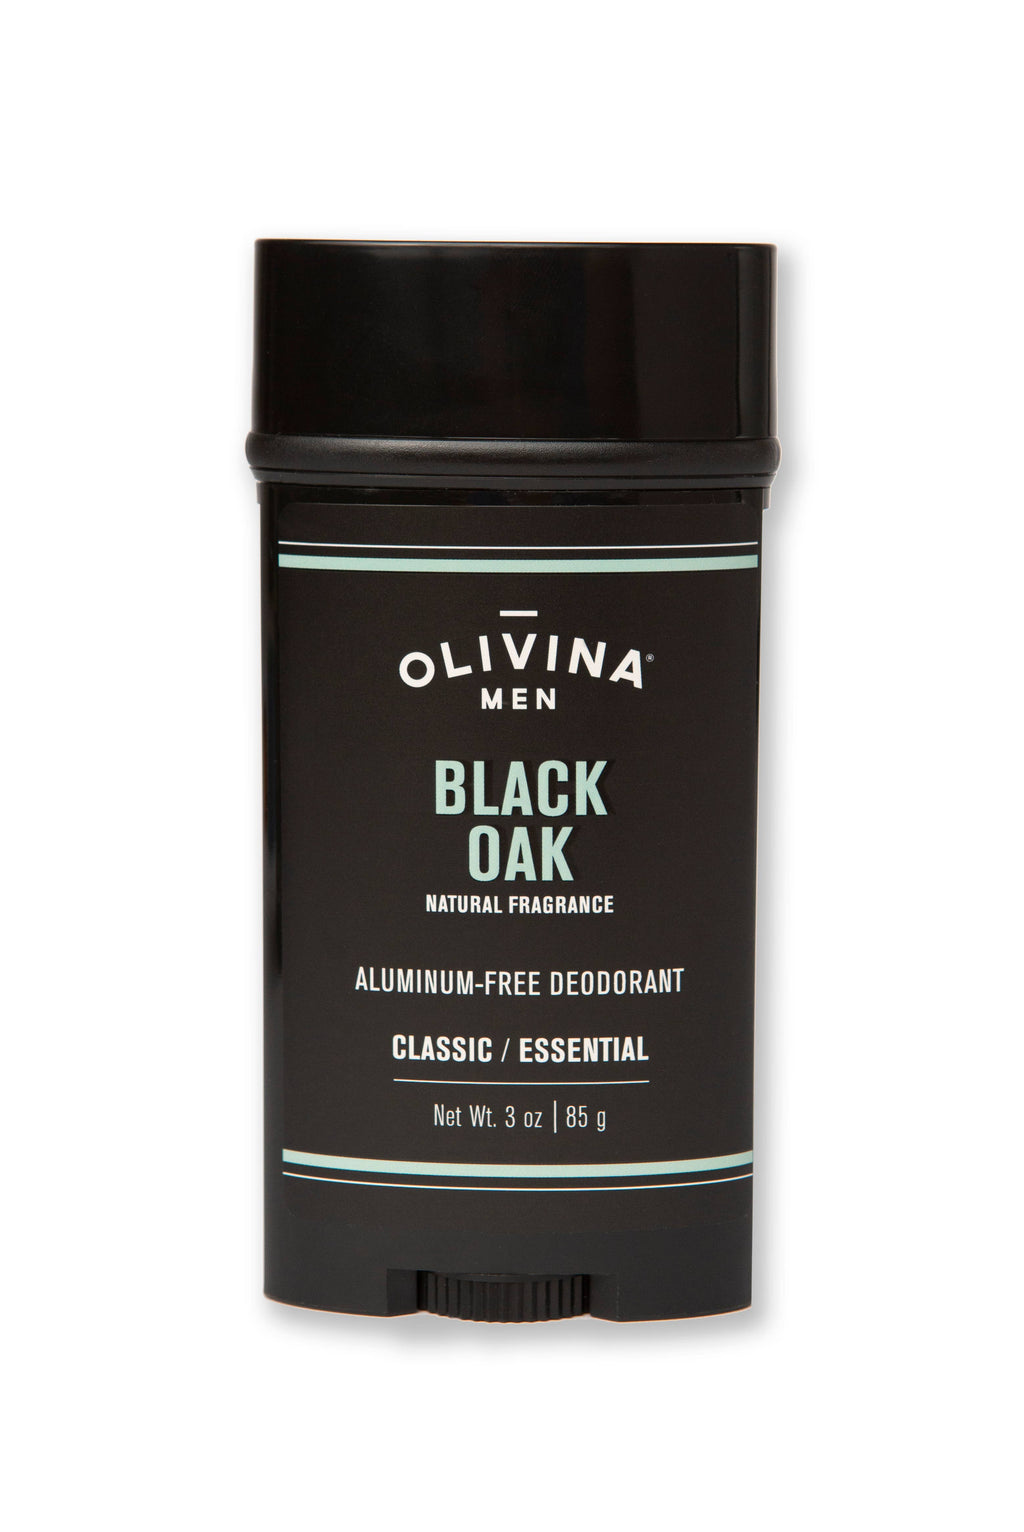 Olivina Men - Black Oak Deodorant